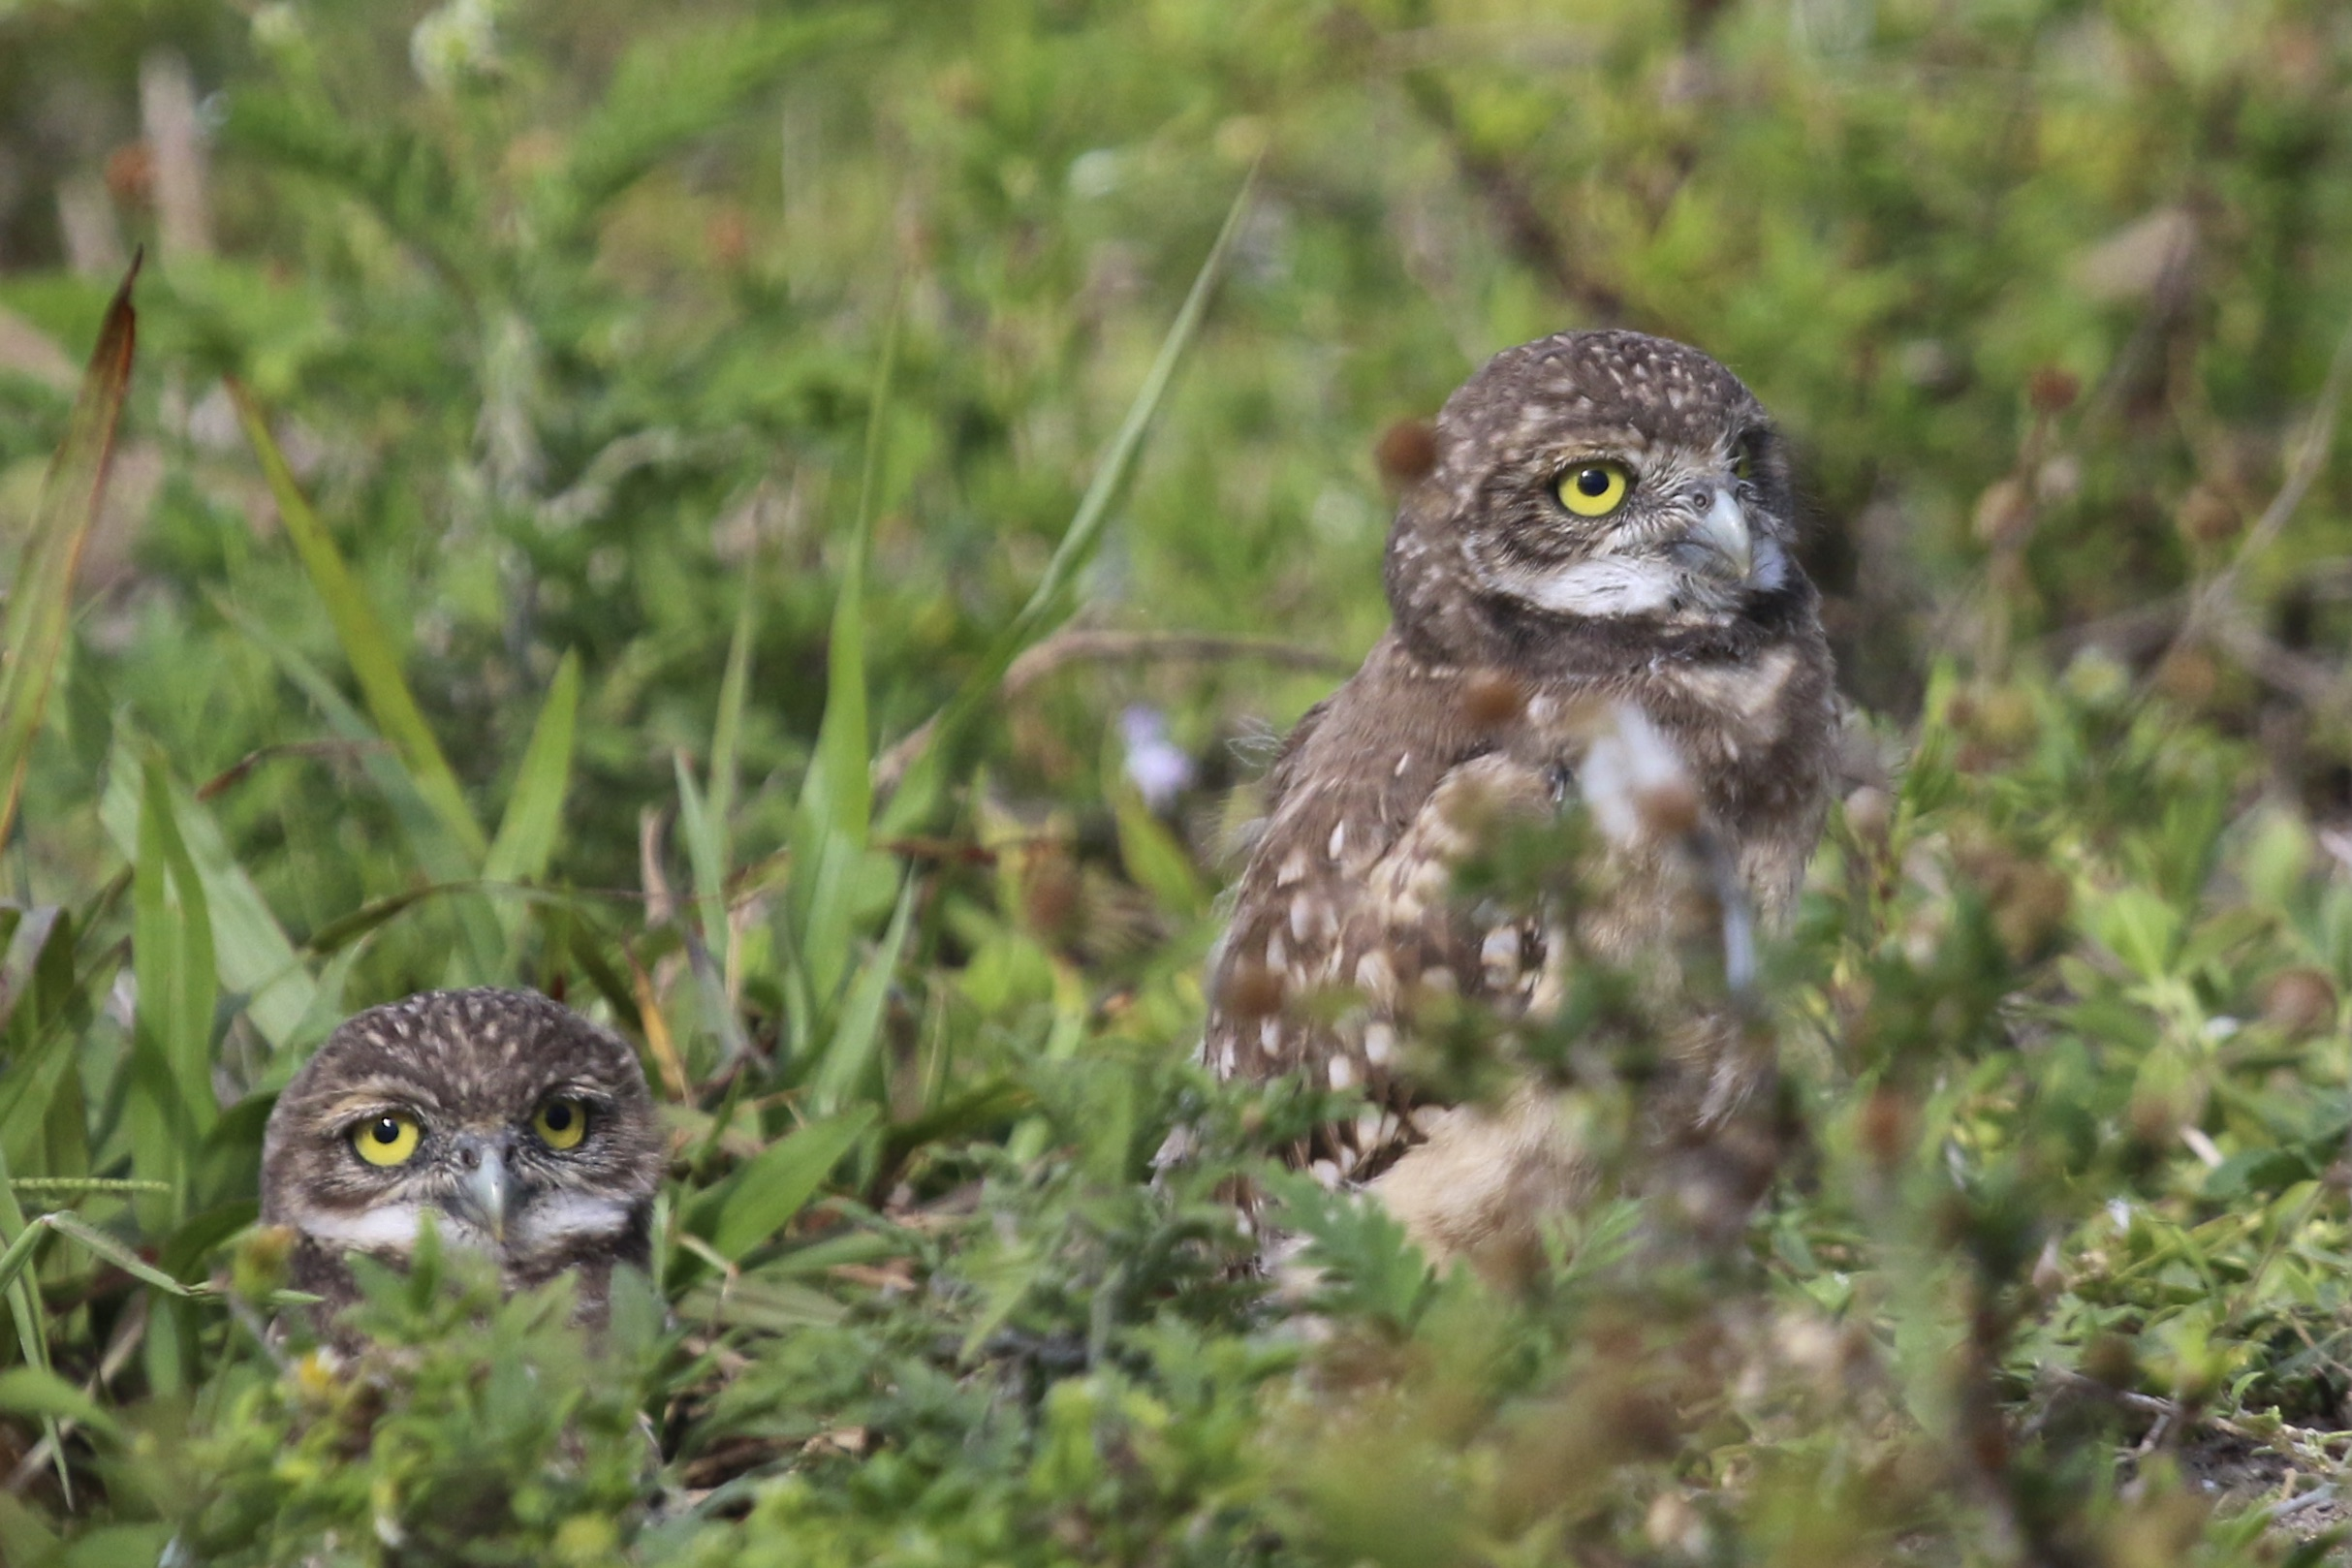 ~A pair of young Burrowing Owls in Cape Coral, Florida 5/5/15.~